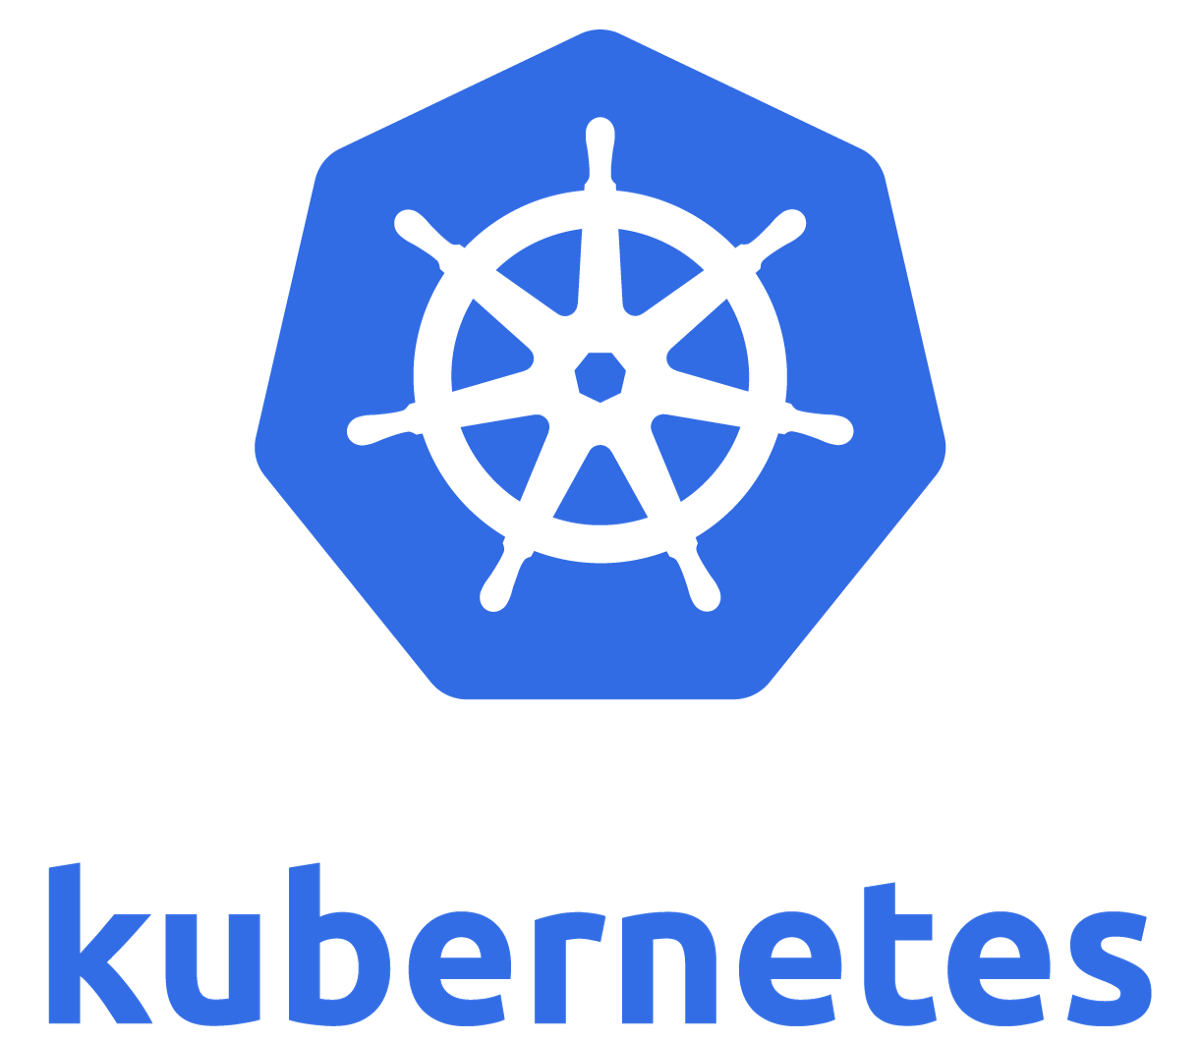 Kubernetes Png - Kubernetes is a big deal, but an overlooked one | by Derrick ...